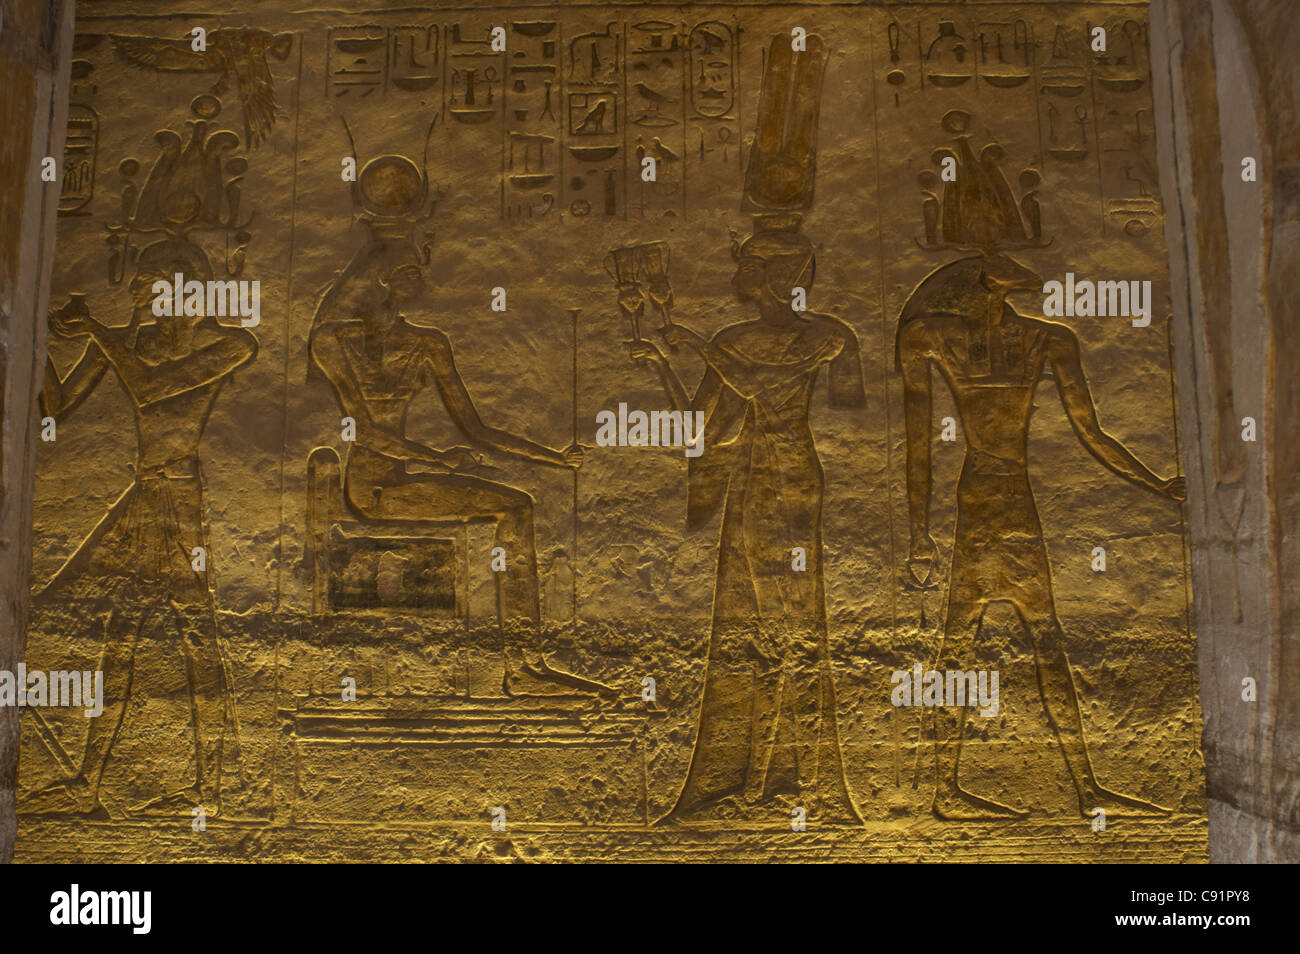 Egyptian art. Small Temple or Temple of Hathor. Relief depicting the pharaoh Ramses II surrounded by gods. Abu Simbel. - Stock Image